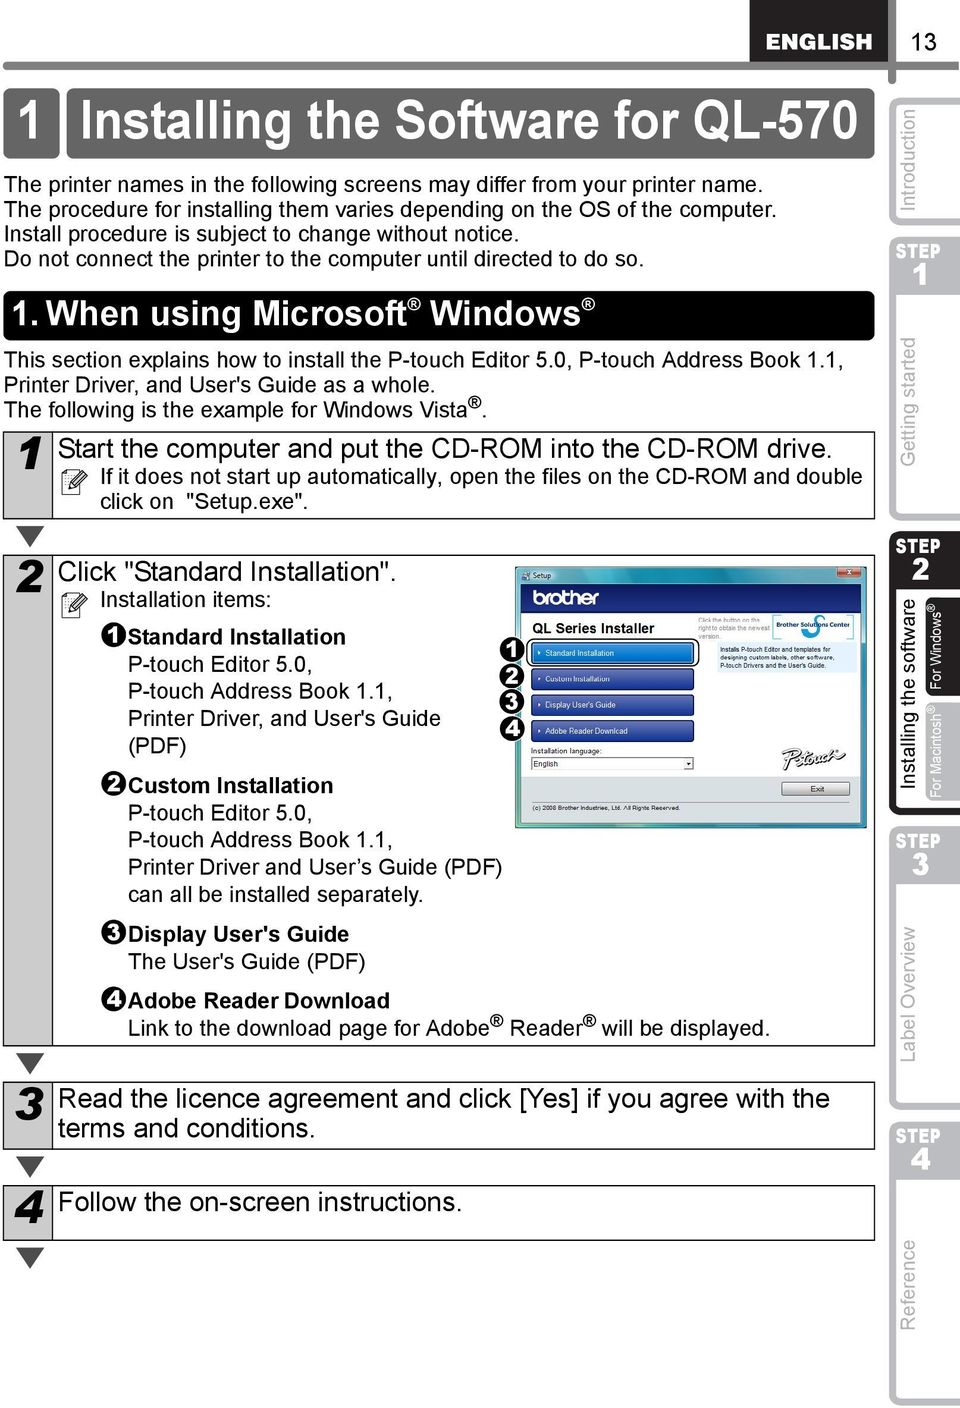 p-touch editor download ql-570